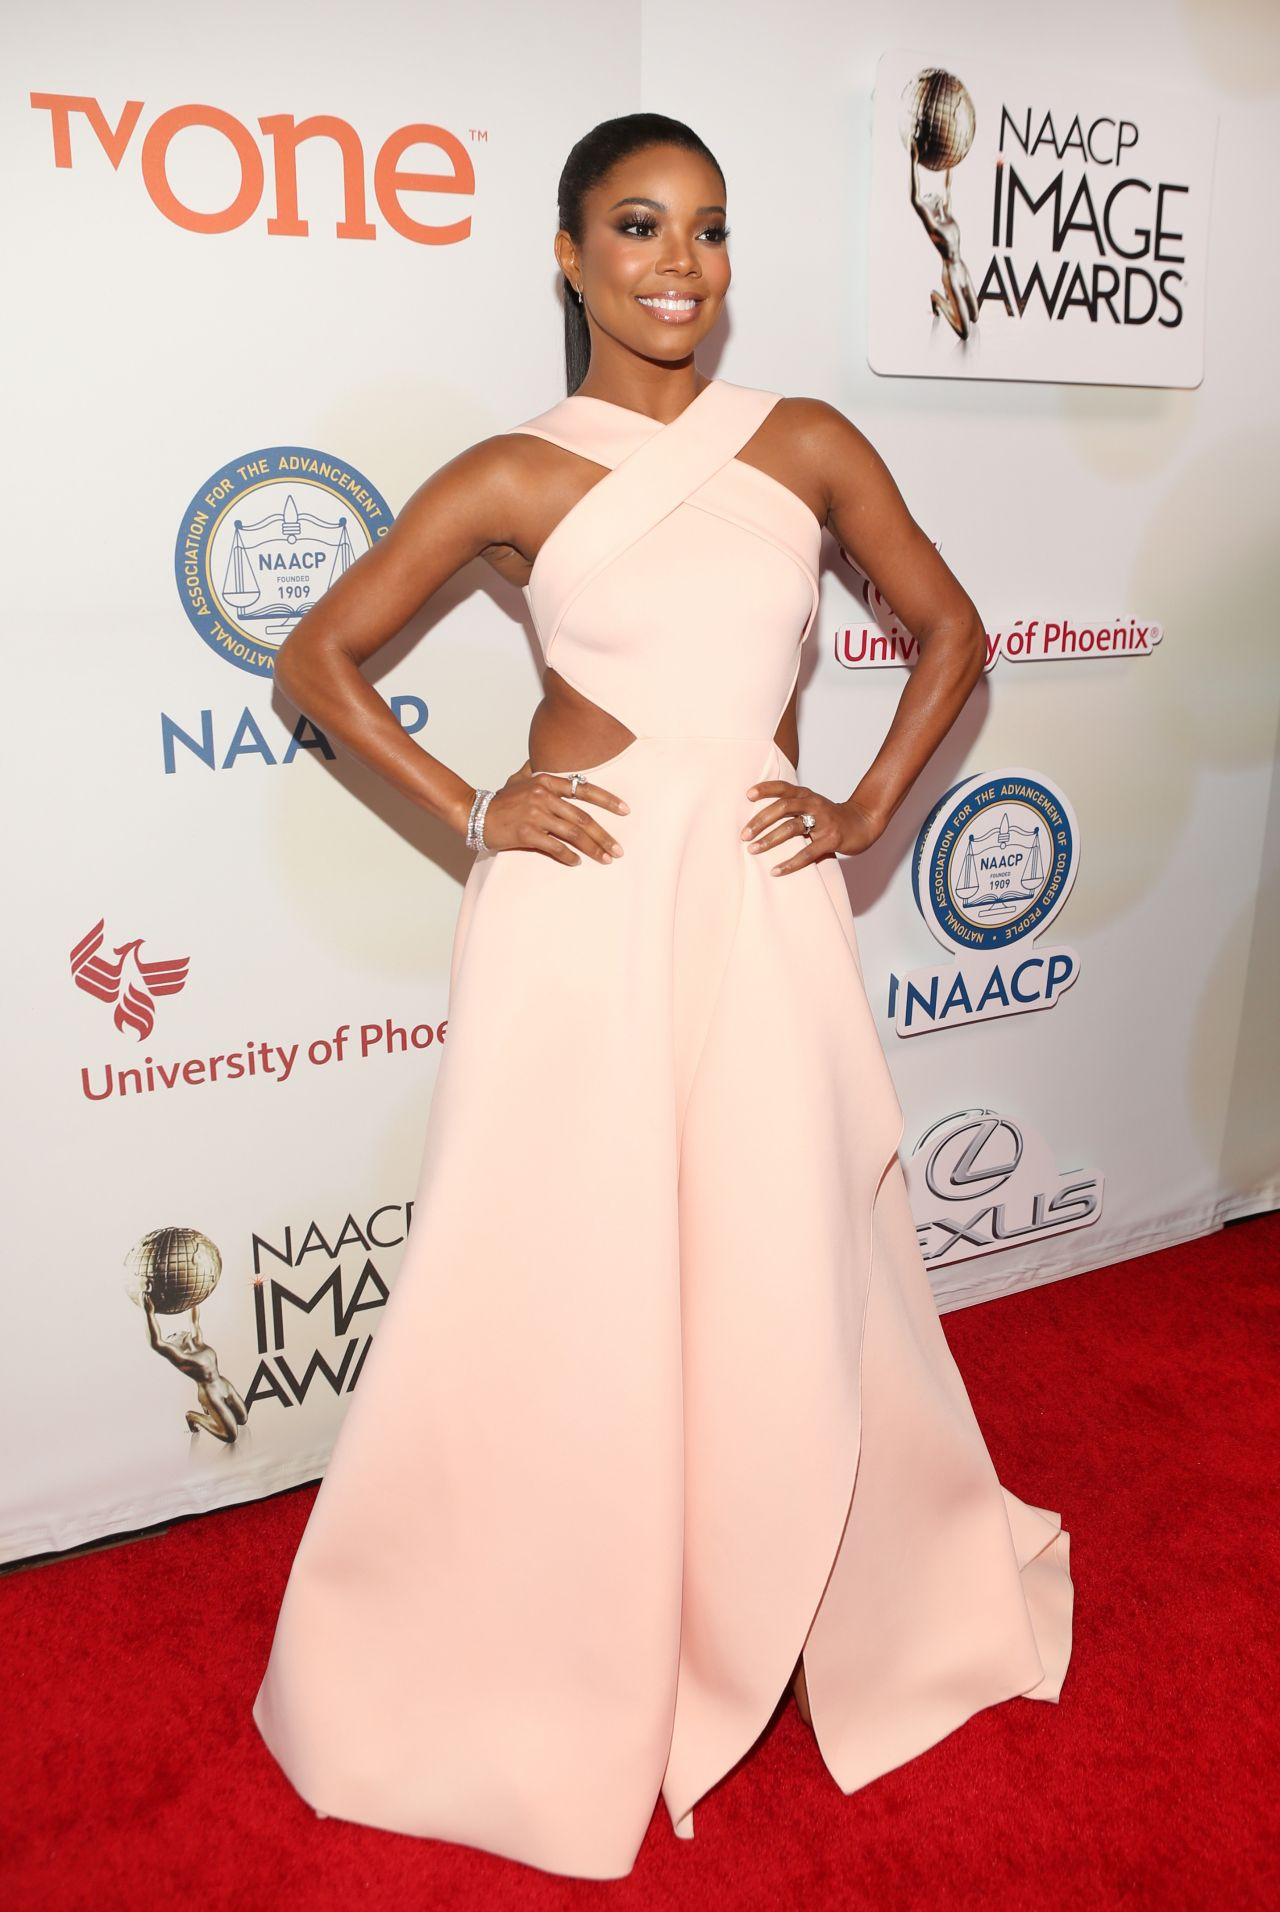 gabrielle-union-2015-naacp-image-awards-in-pasadena